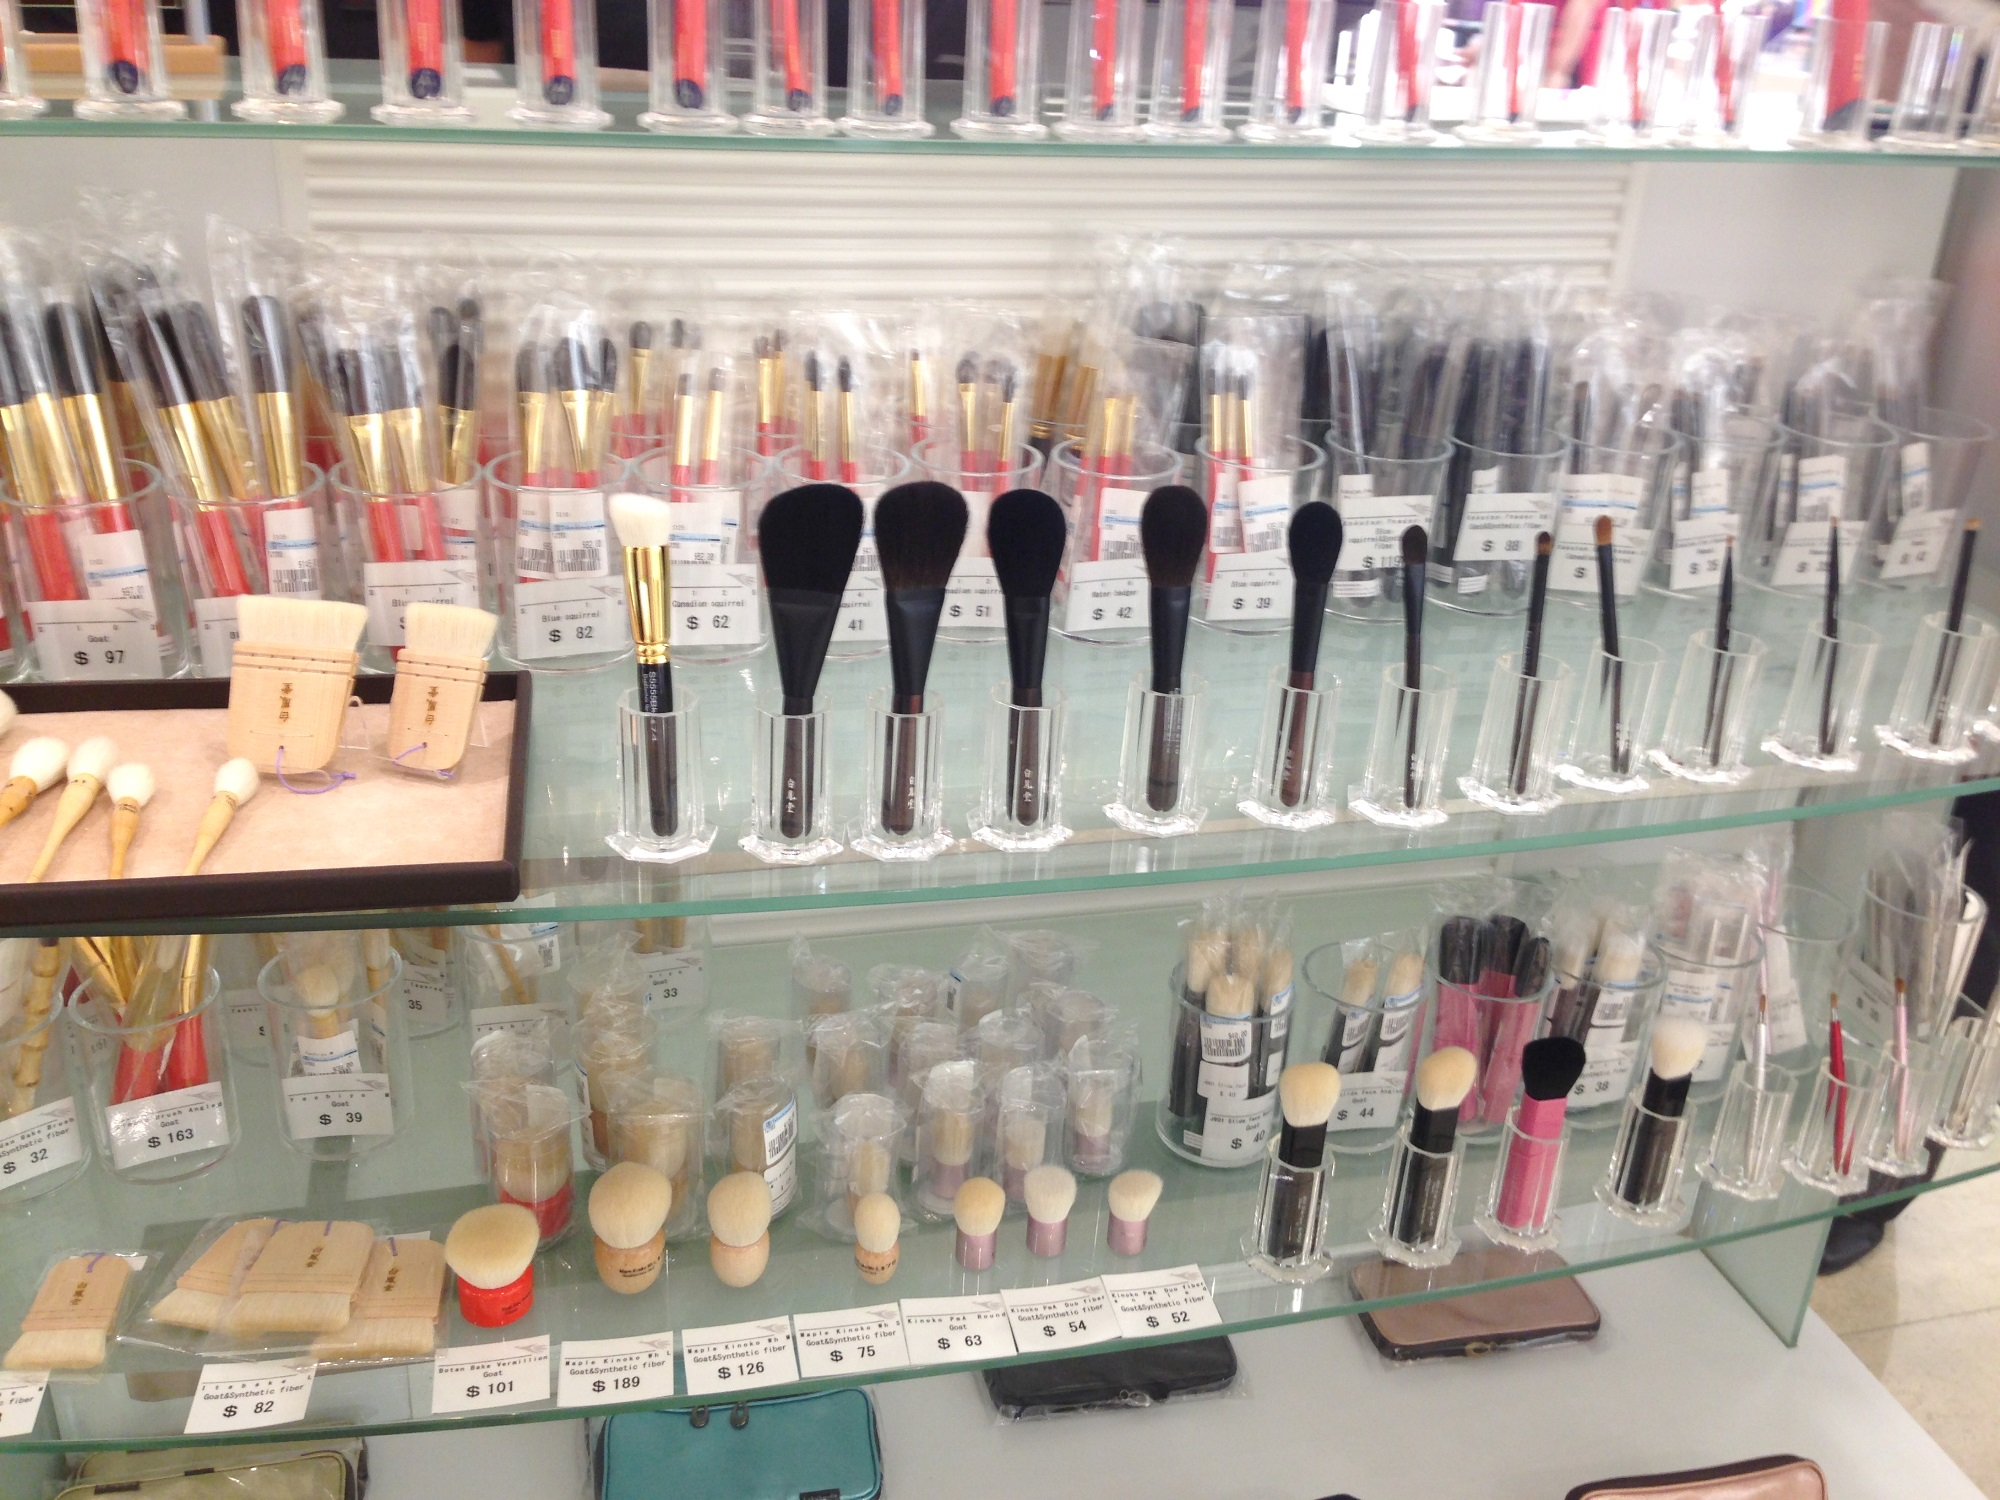 Hakuhodo Japanese Traditions, Kinoko Prices at the Hakuhodo Brush Fair at Takashimaya